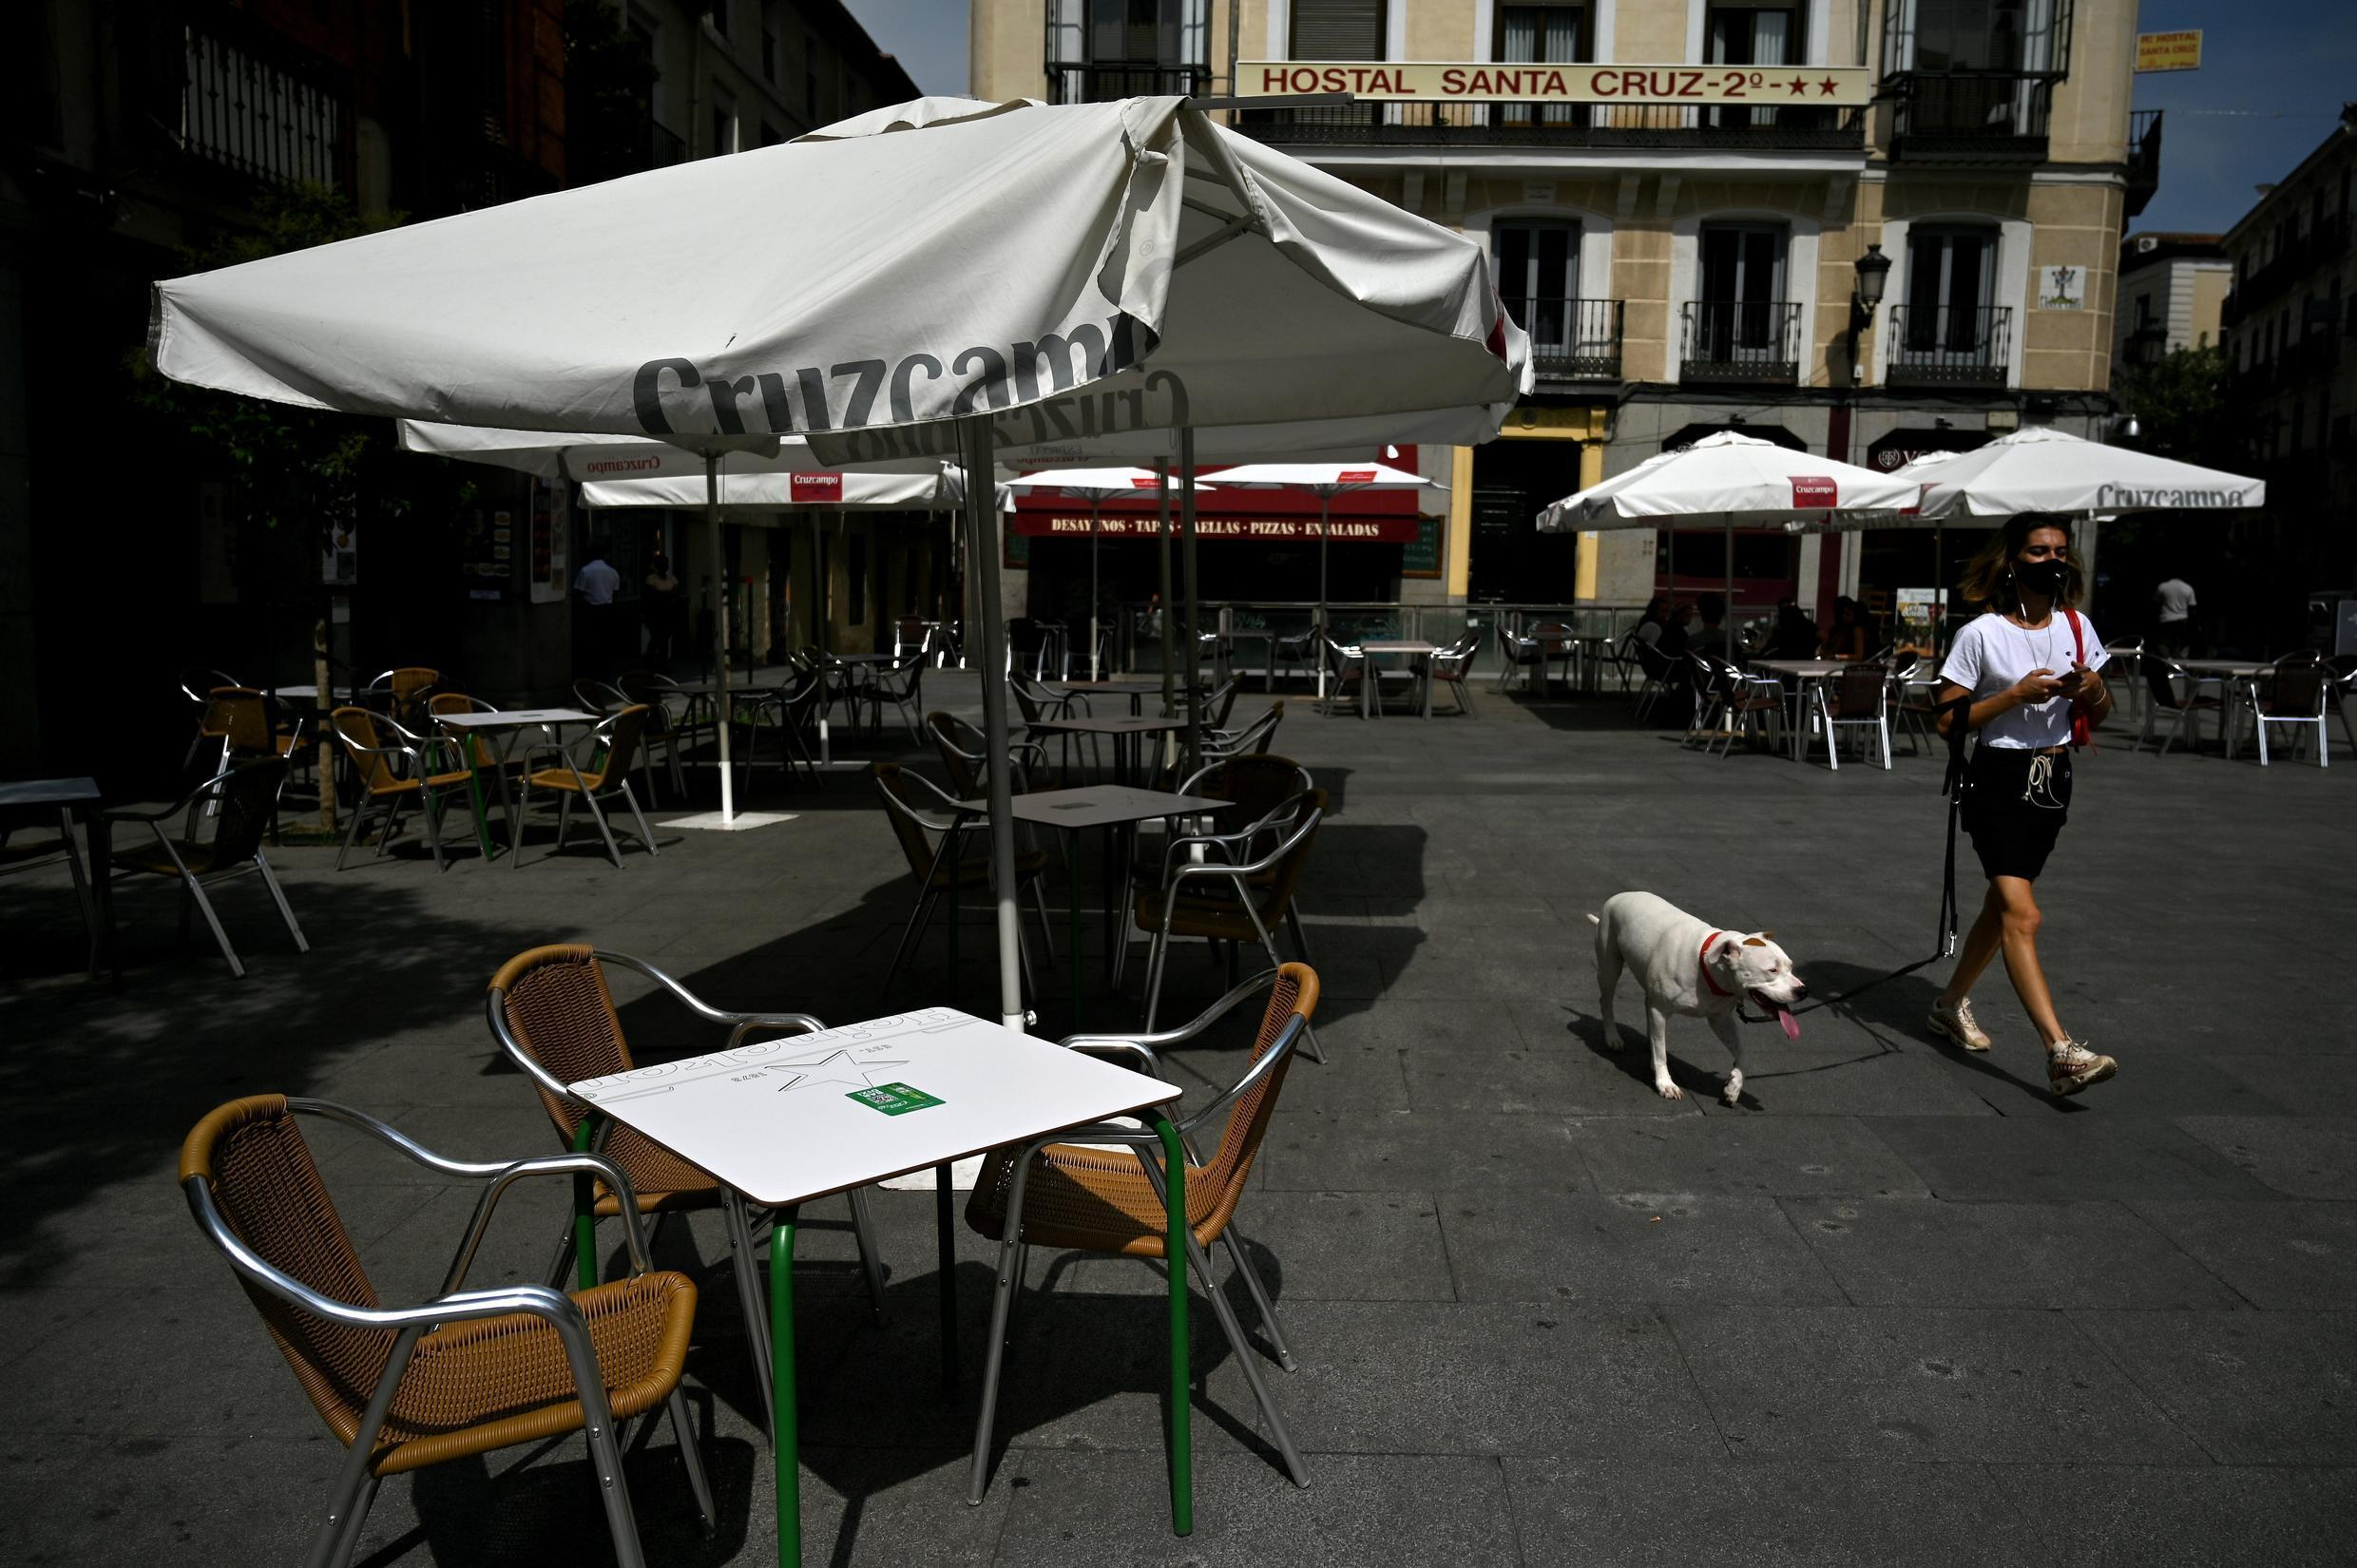 In several areas in and around Madrid, there are more 1,000 cases per 100,000 inhabitants